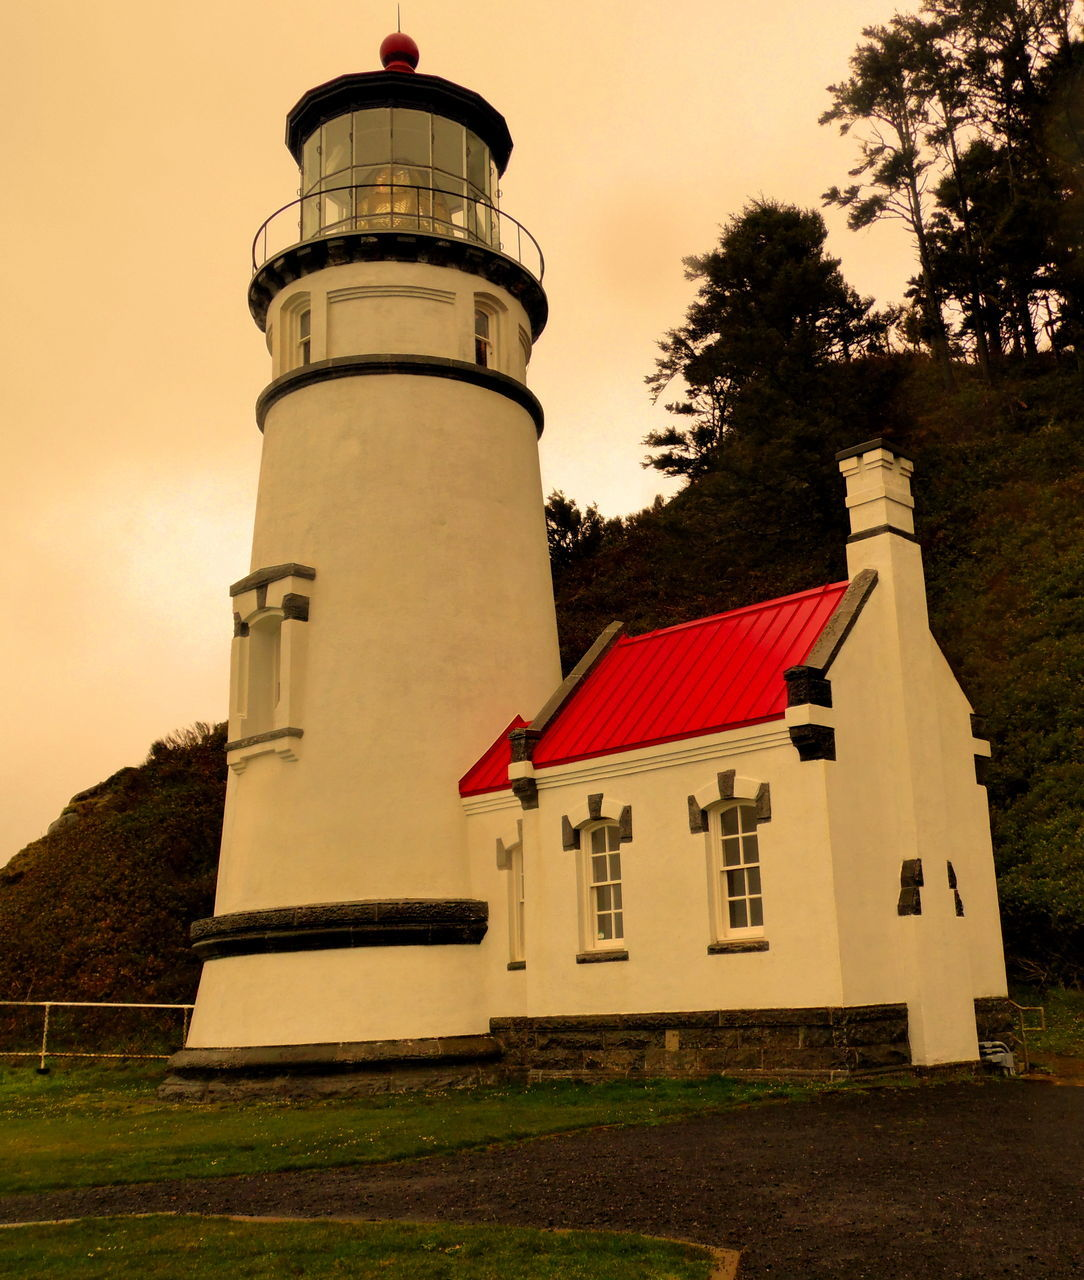 architecture, building exterior, built structure, lighthouse, tree, no people, sky, guidance, outdoors, sunset, low angle view, day, grass, nature